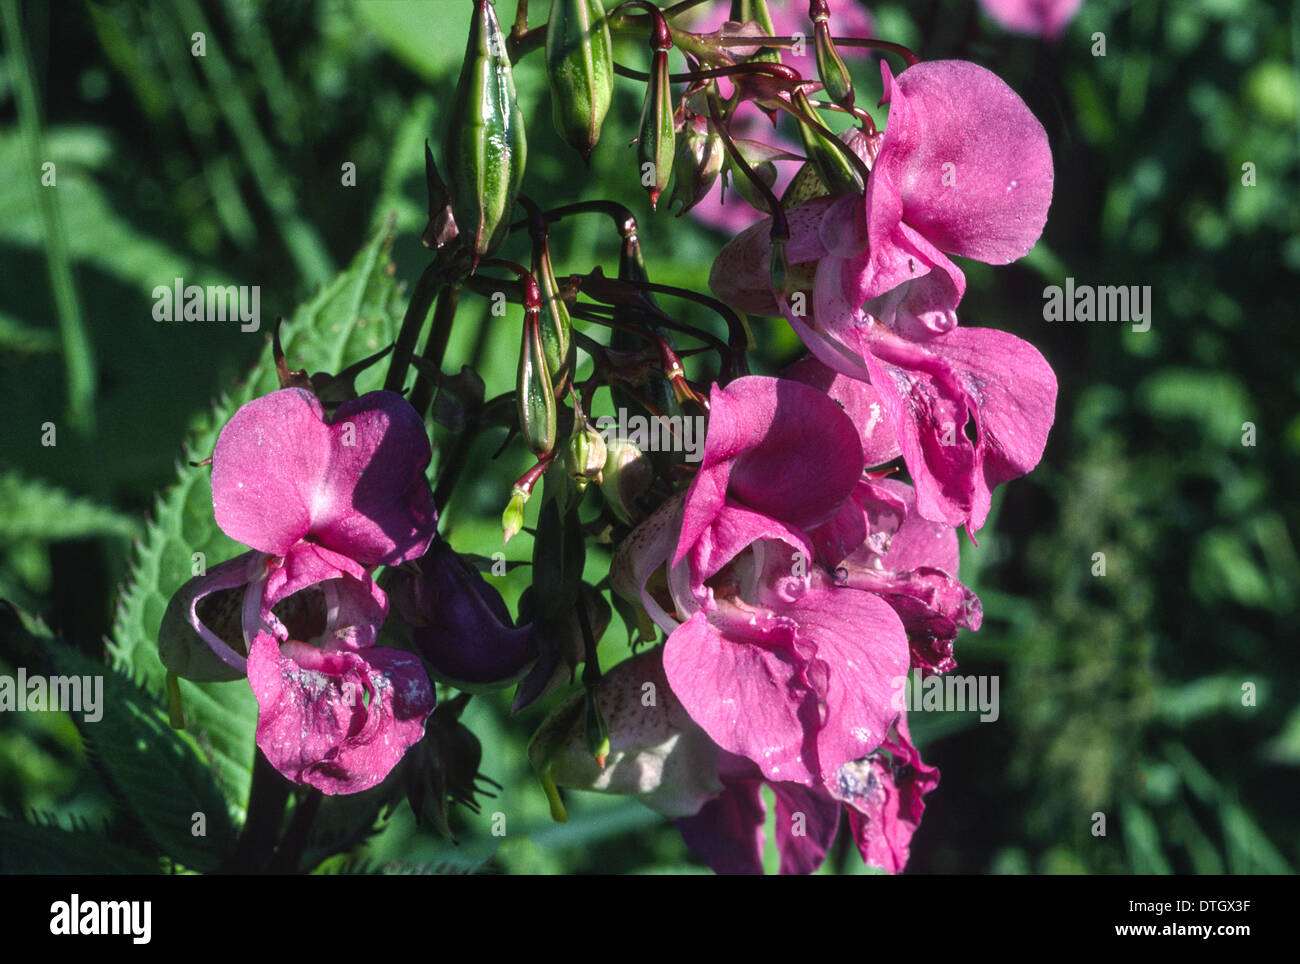 Deep pink flowers and green seed pods of the himalayan balsam plant deep pink flowers and green seed pods of the himalayan balsam plant impatiens glandulifera mightylinksfo